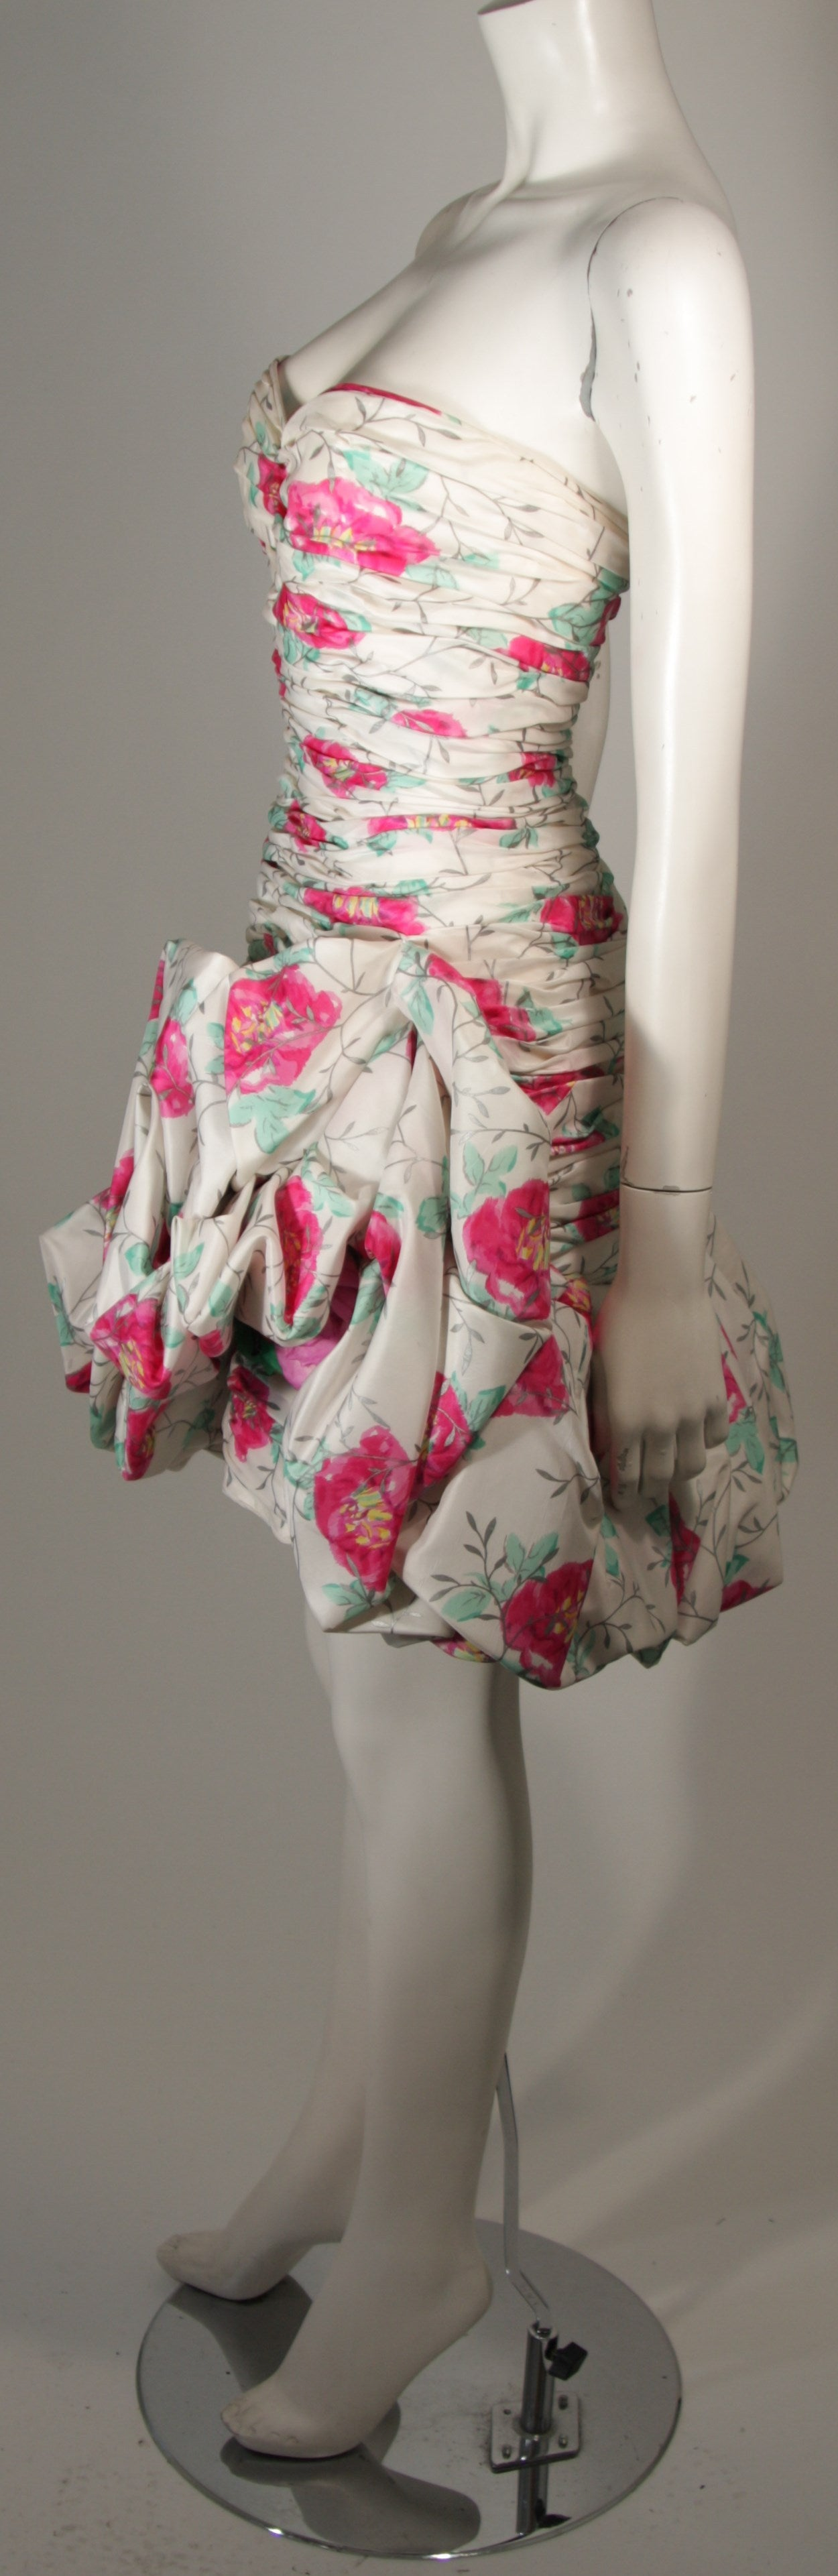 Women's Ungaro White Silk Cocktail Dress with Pink & Green Floral Design Size 8 For Sale